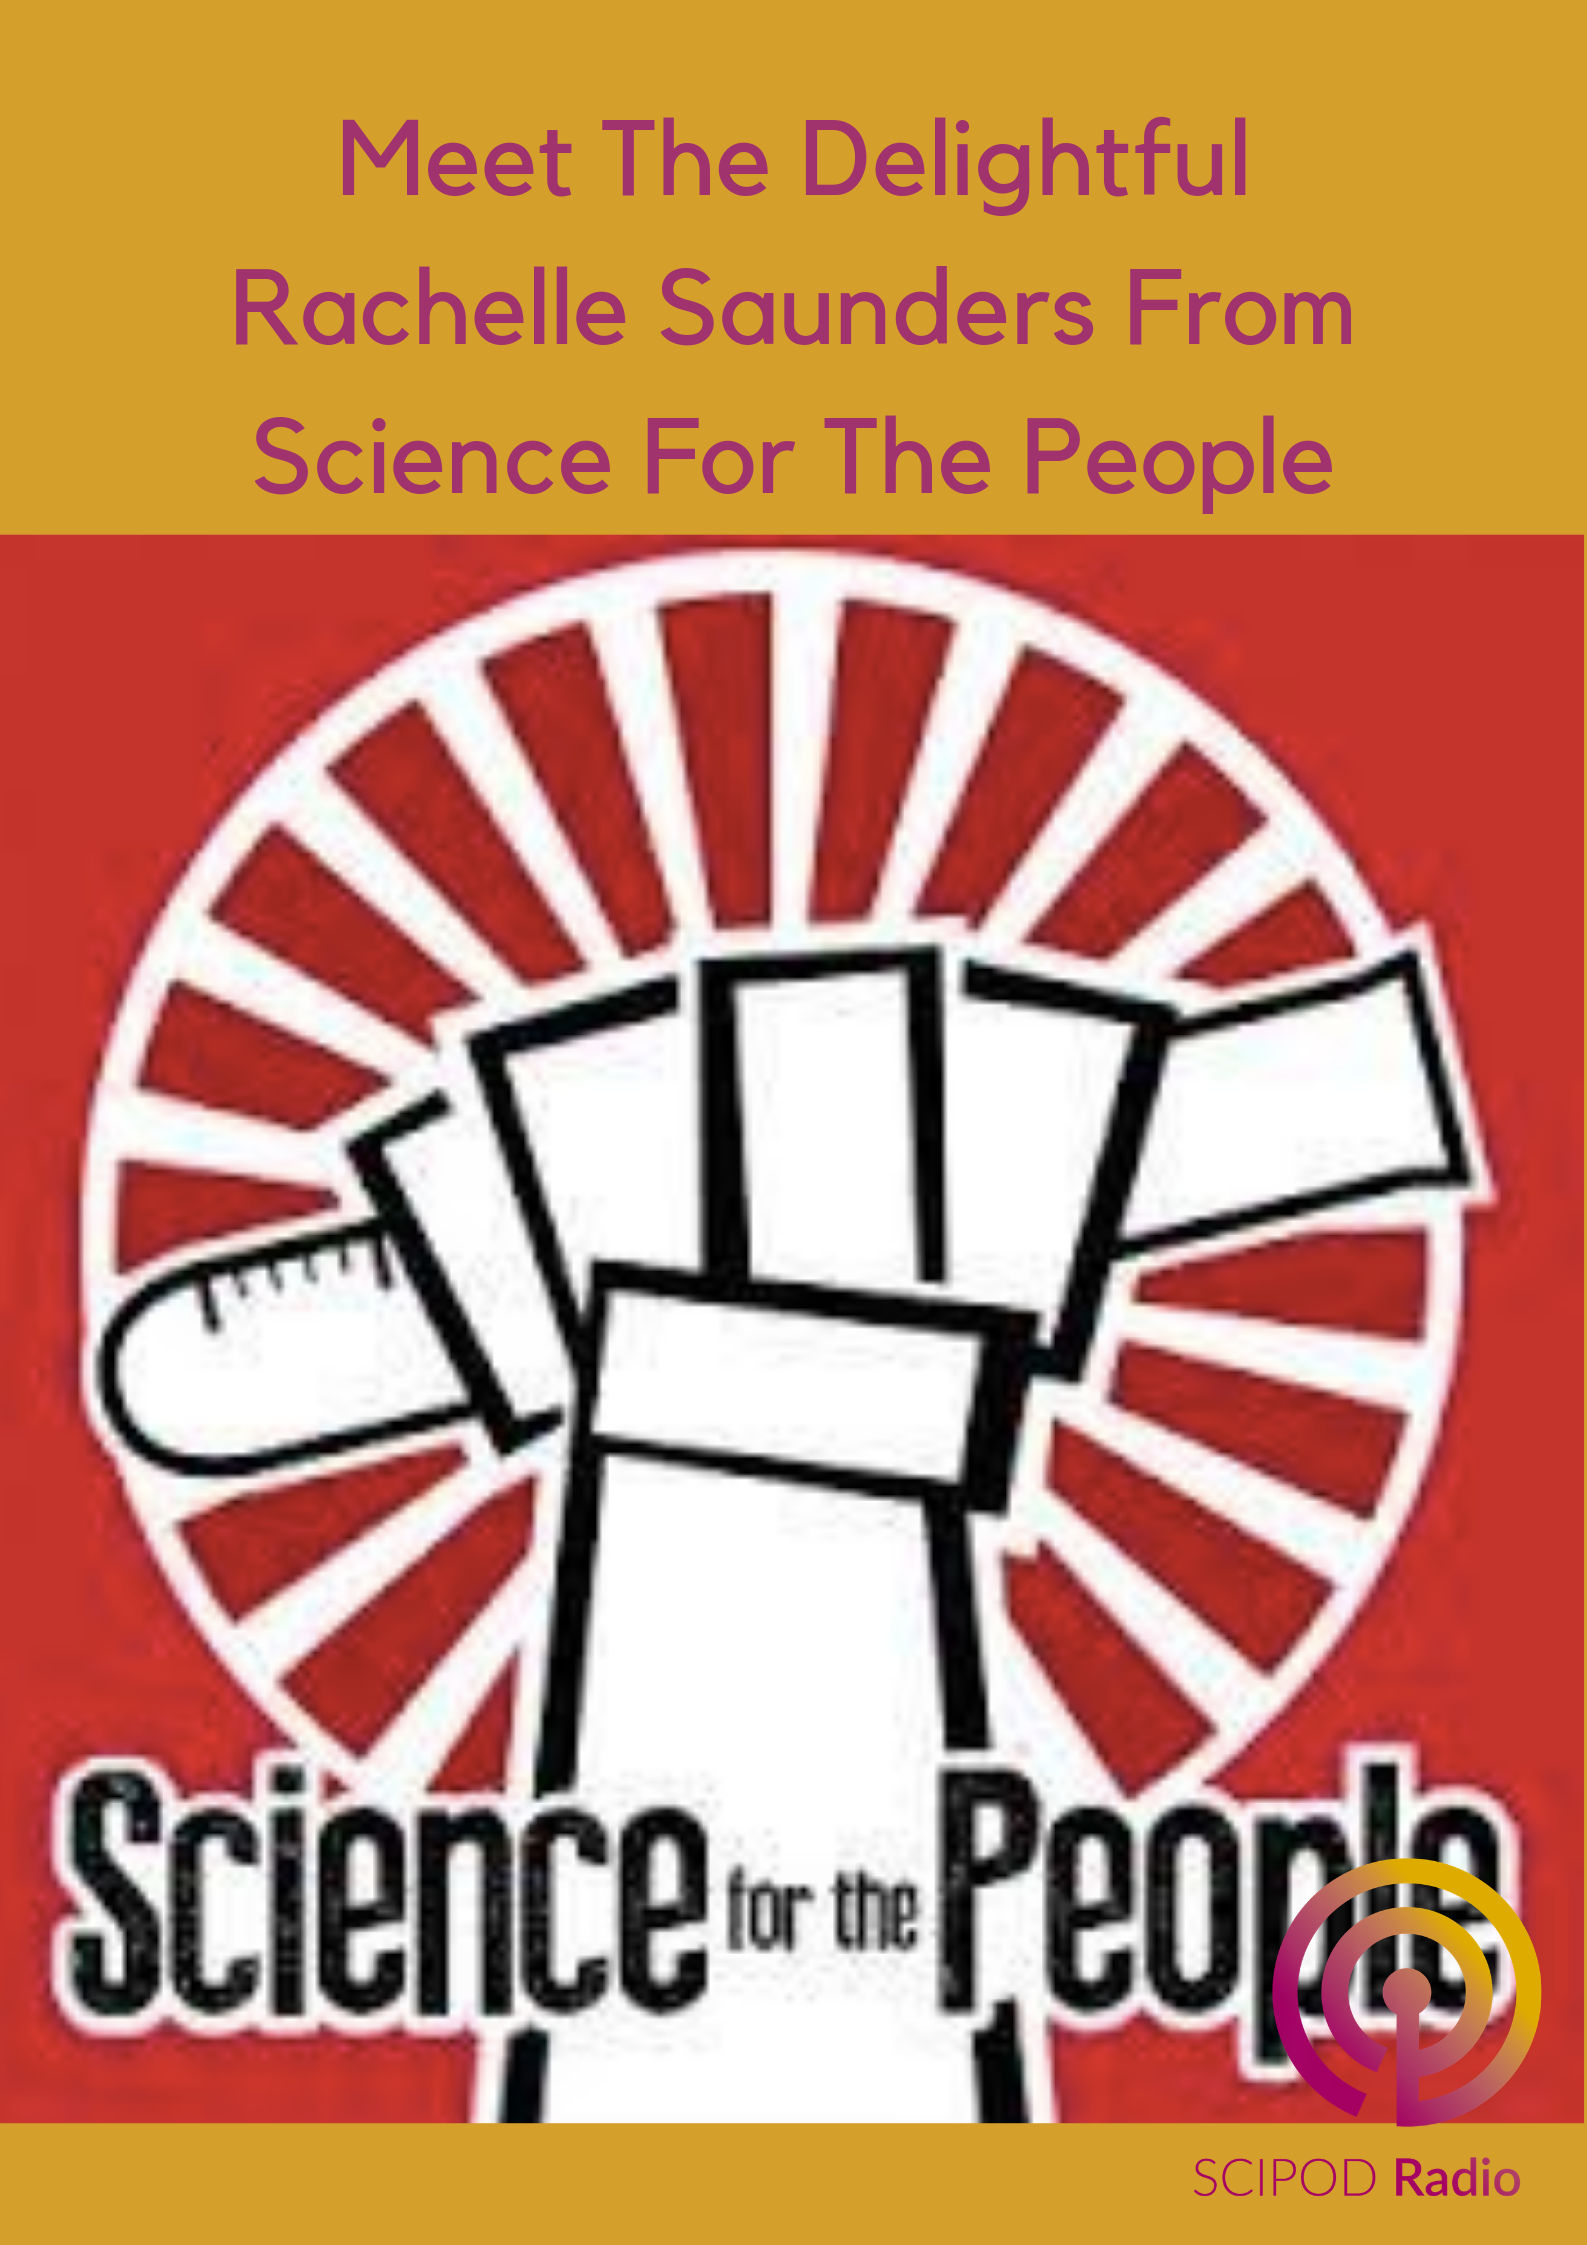 Meet The Delightful Rachelle Saunders From Science For The People